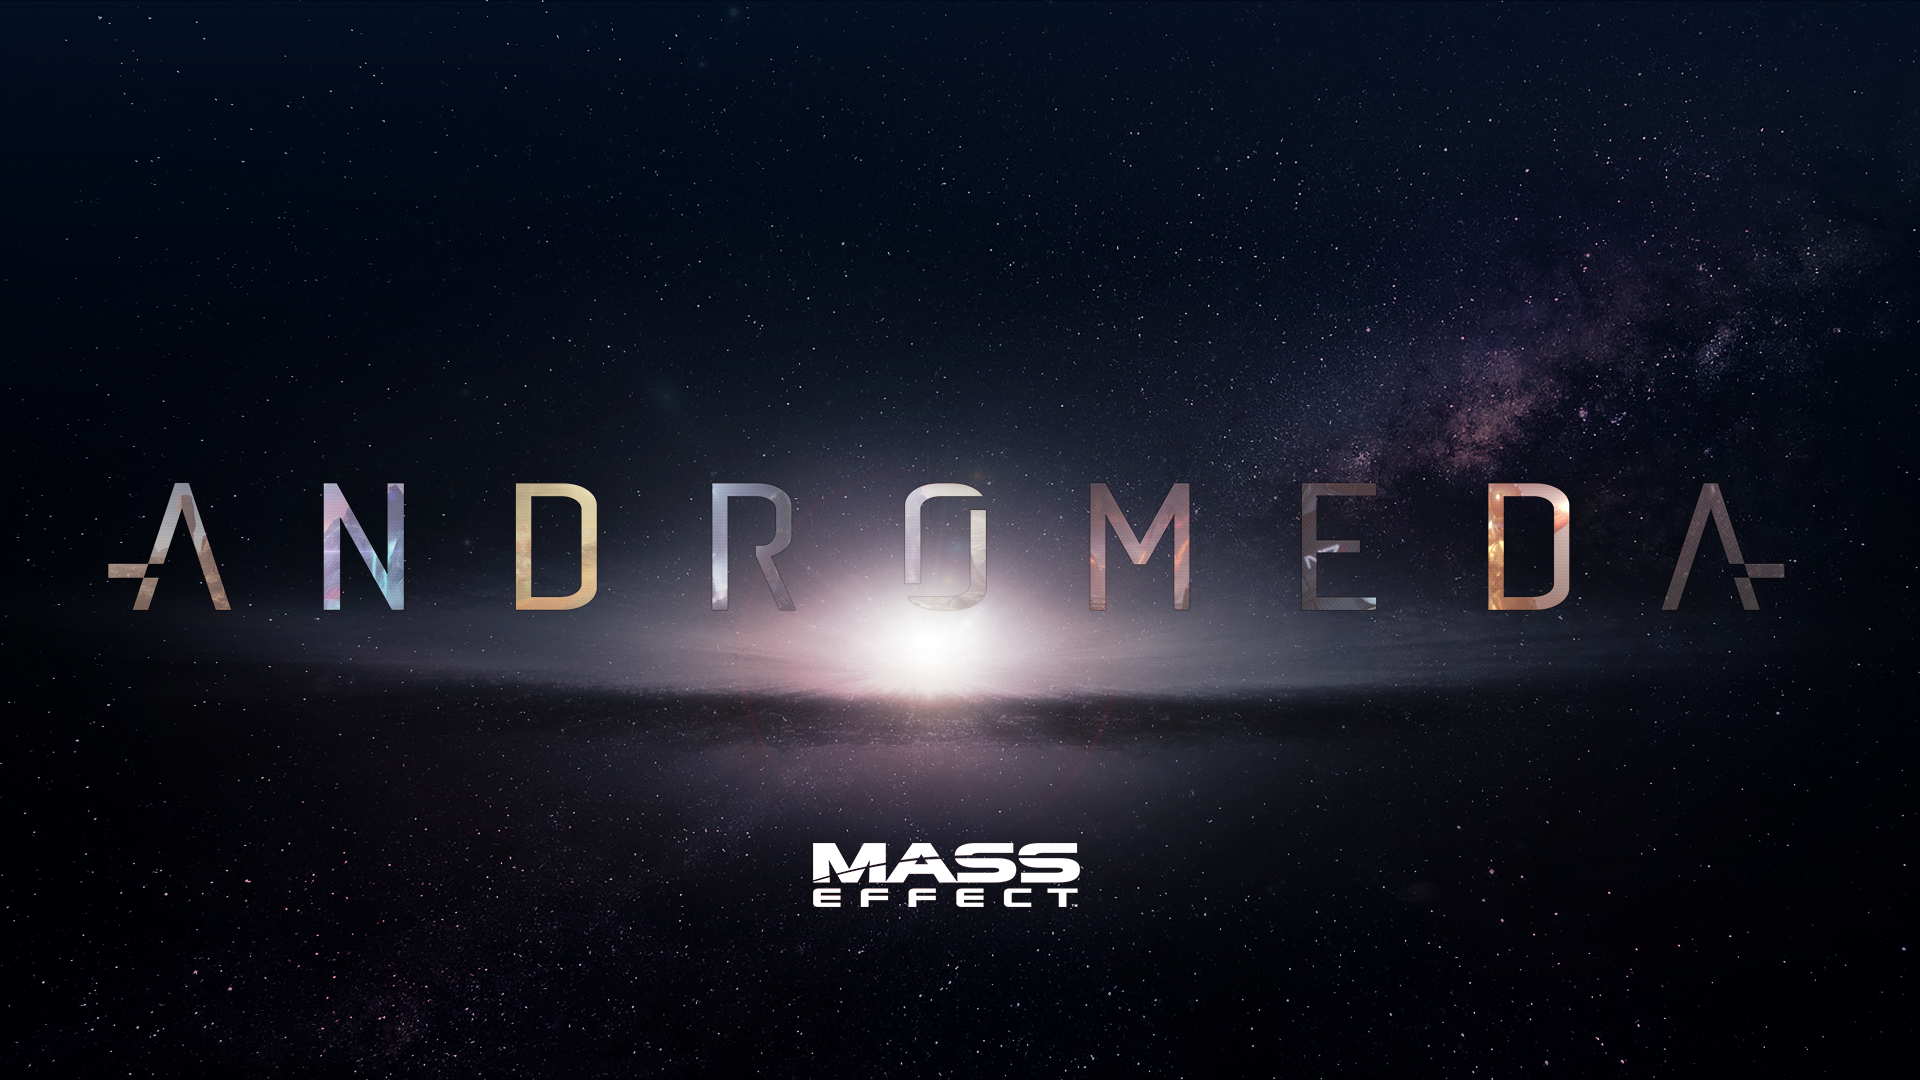 Mass Effect Andromeda Wallpaper By Redliner91 On Deviantart